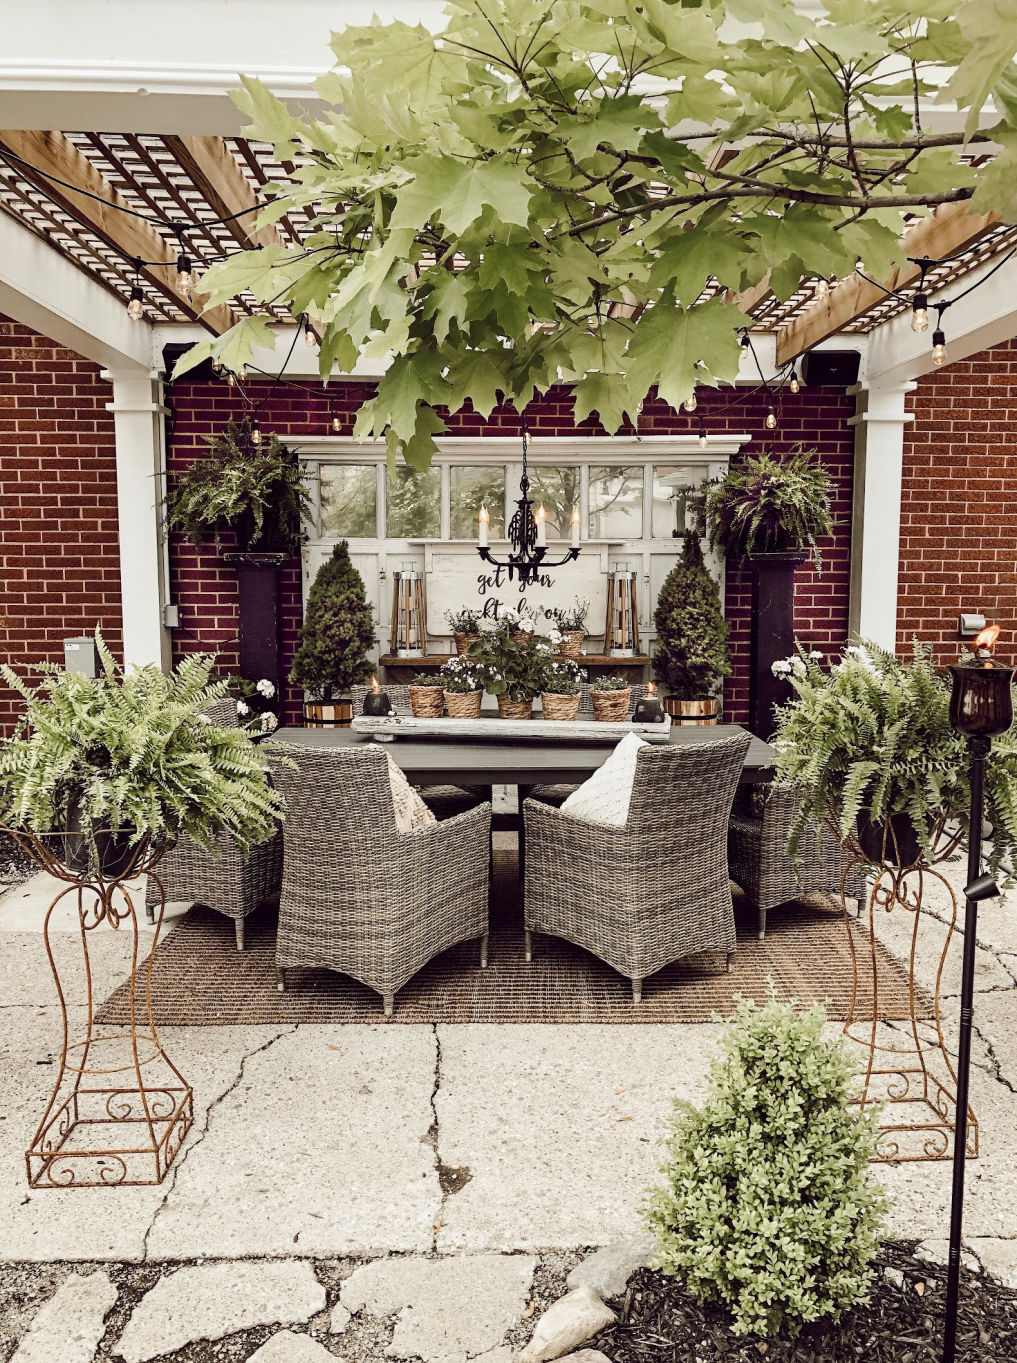 Backyard pergola with chandelier #patio #pergola #outdoors #farmhousedecor